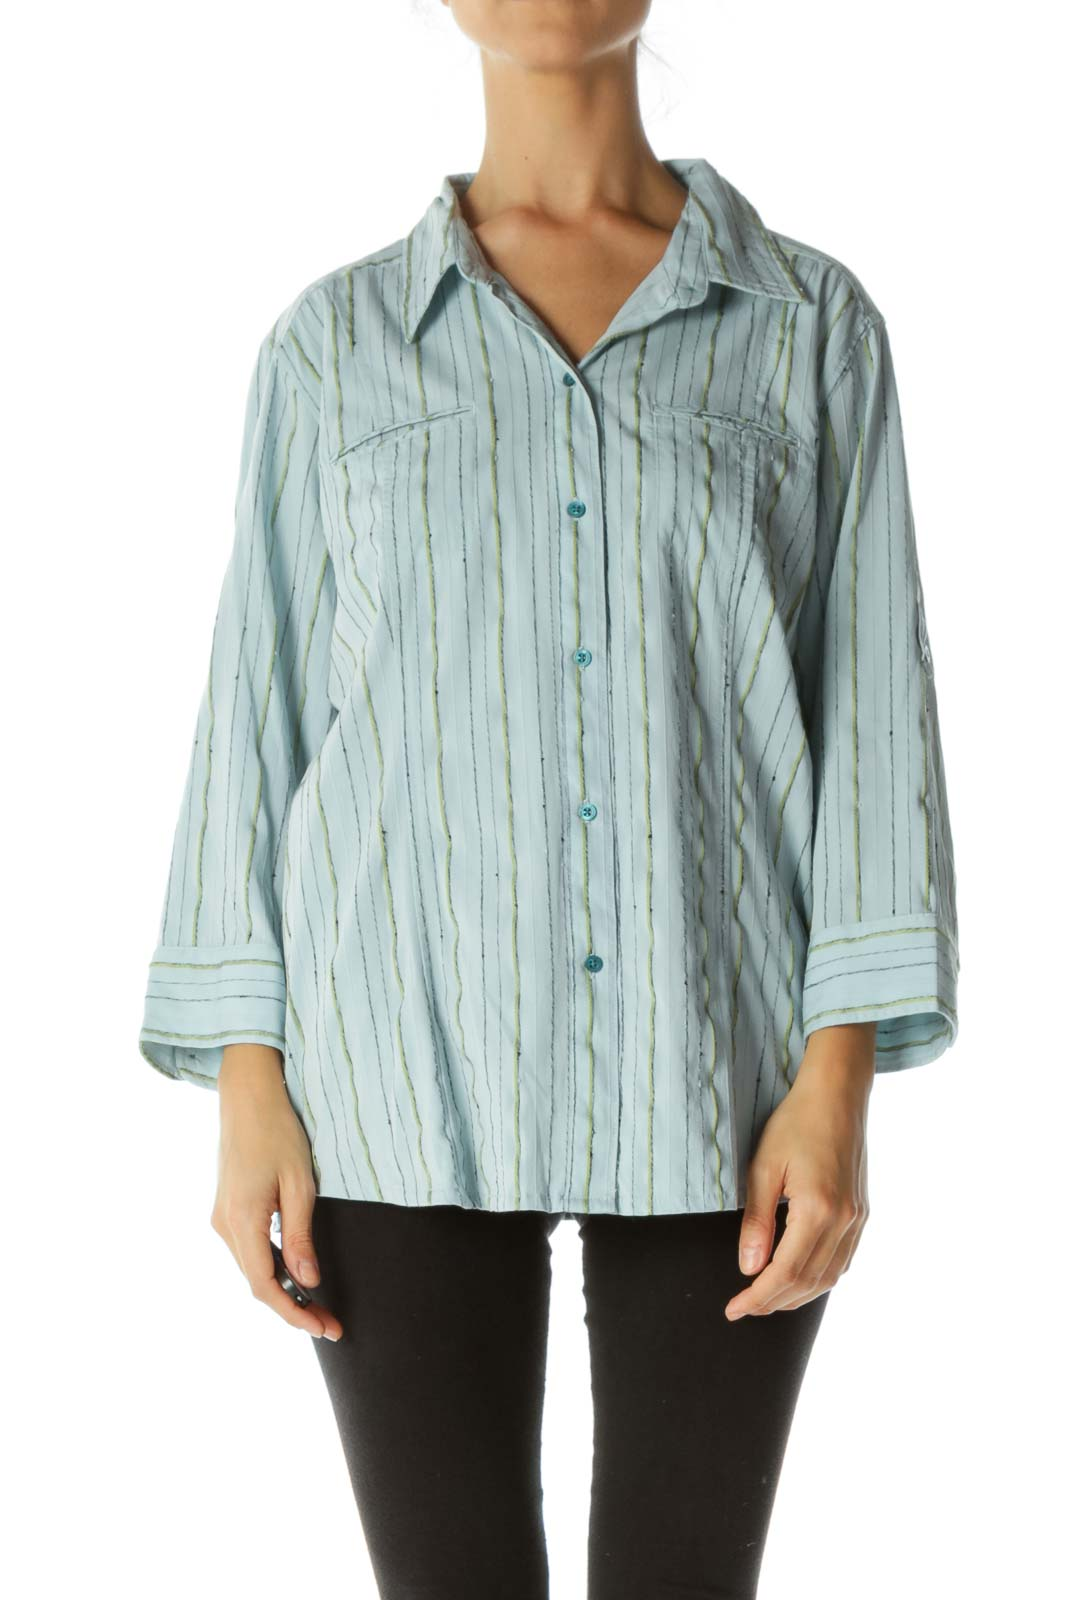 Blue Striped Collard Shirt